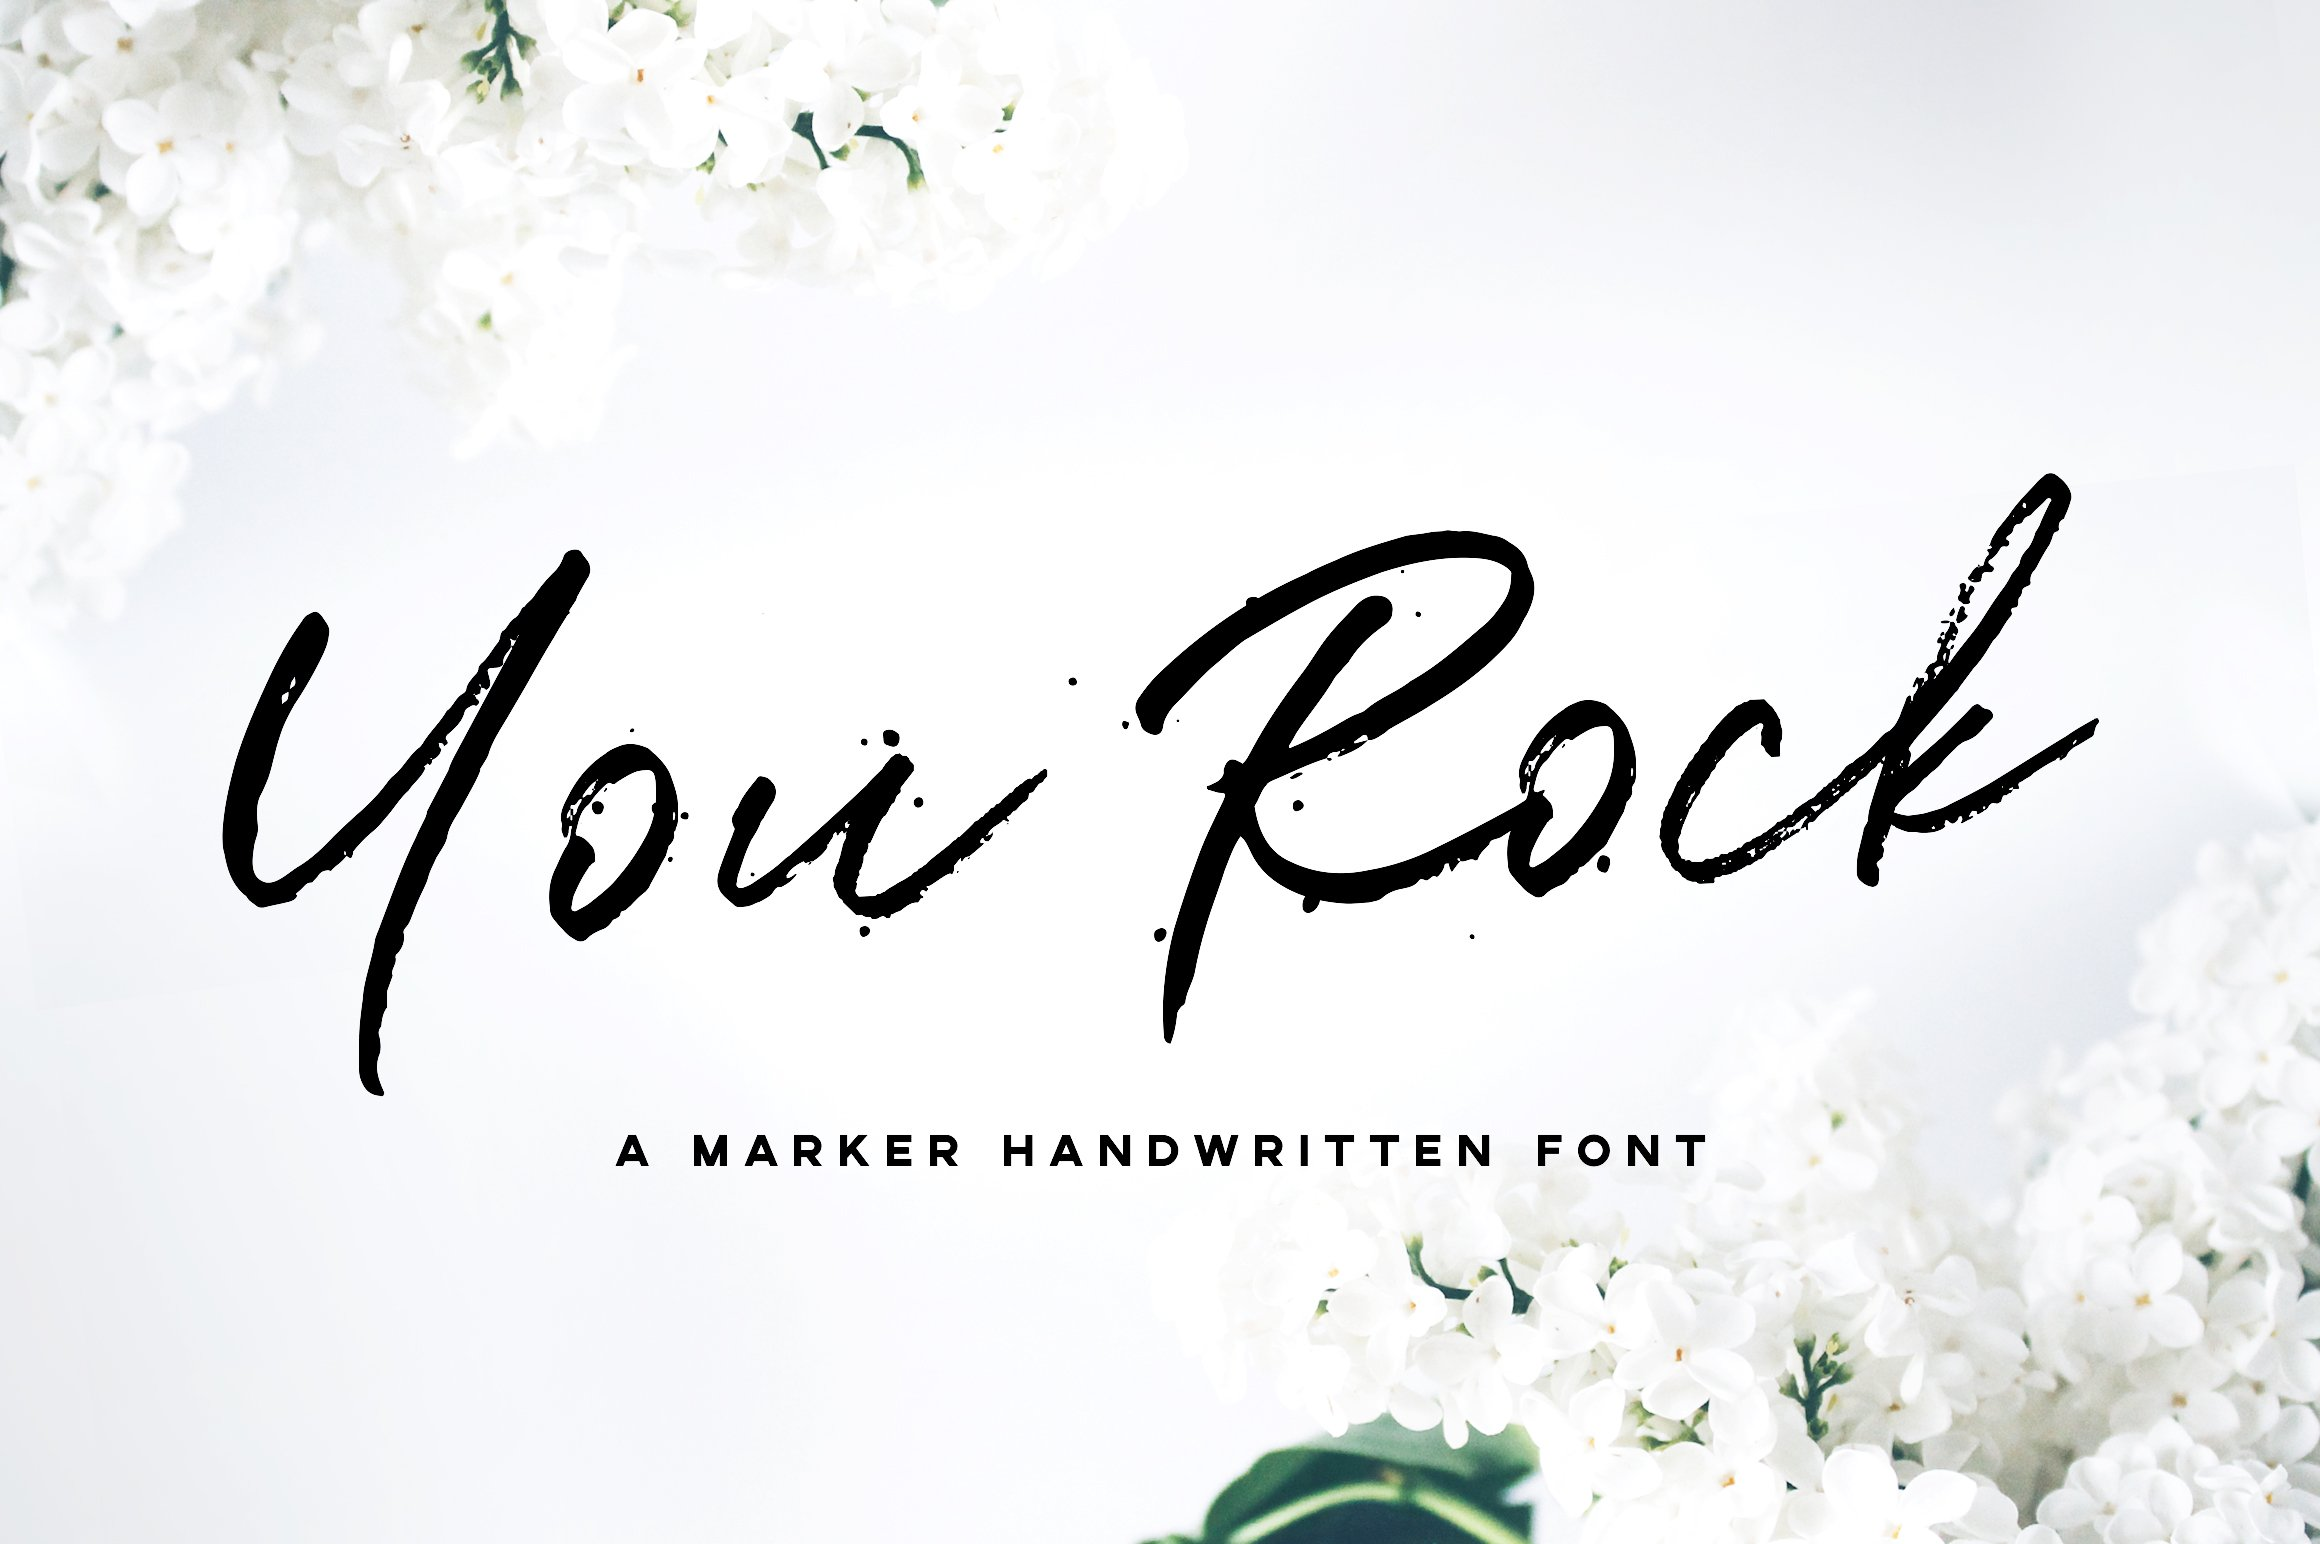 You rock handwritten font script fonts creative market